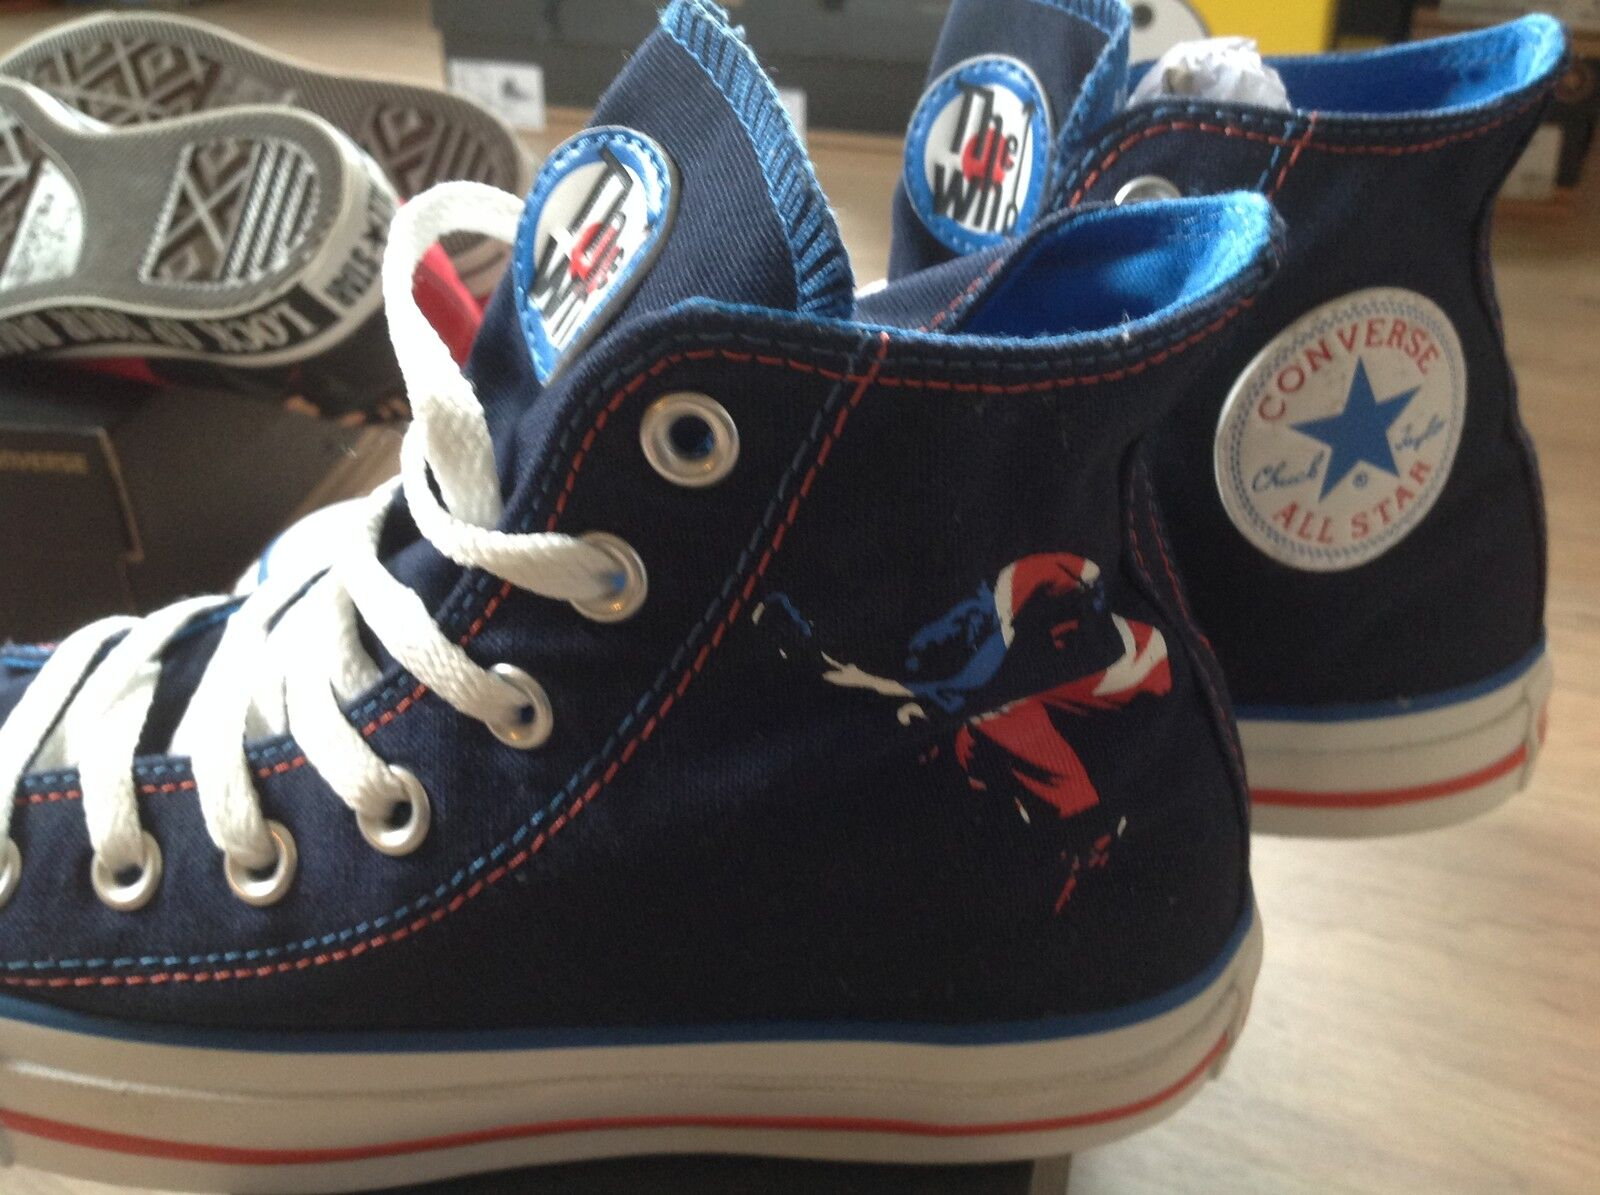 converse ALL STAR - THE WHO - LIMITED EDITION neu grösse 37,5 (UK 5)